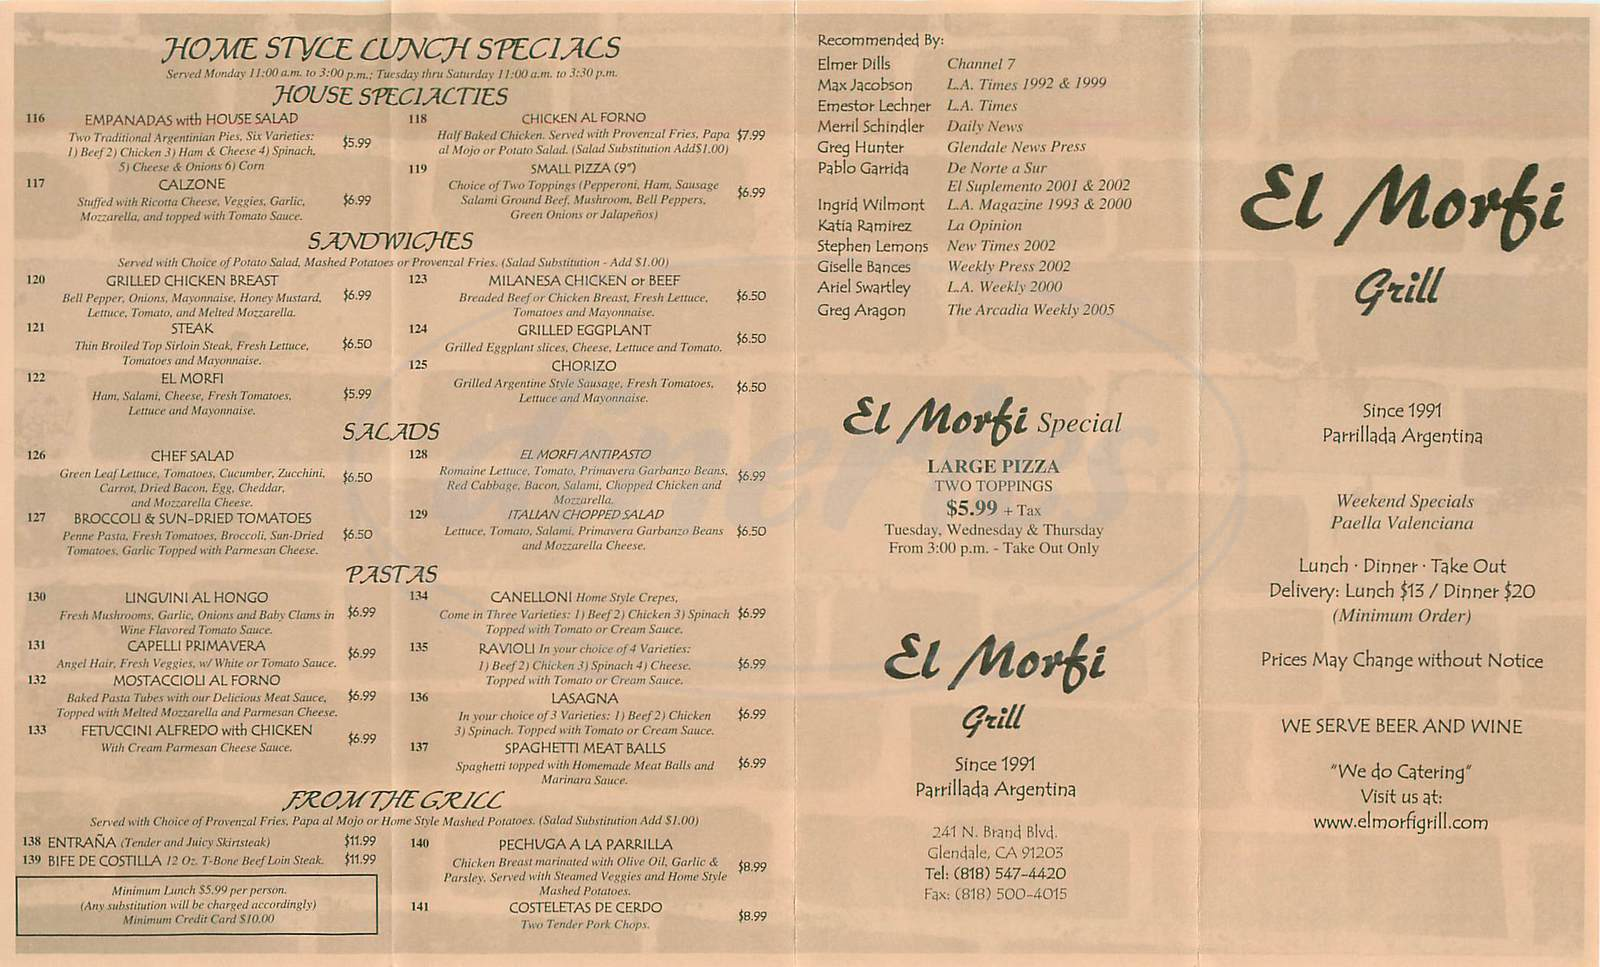 menu for El Morfi Grill